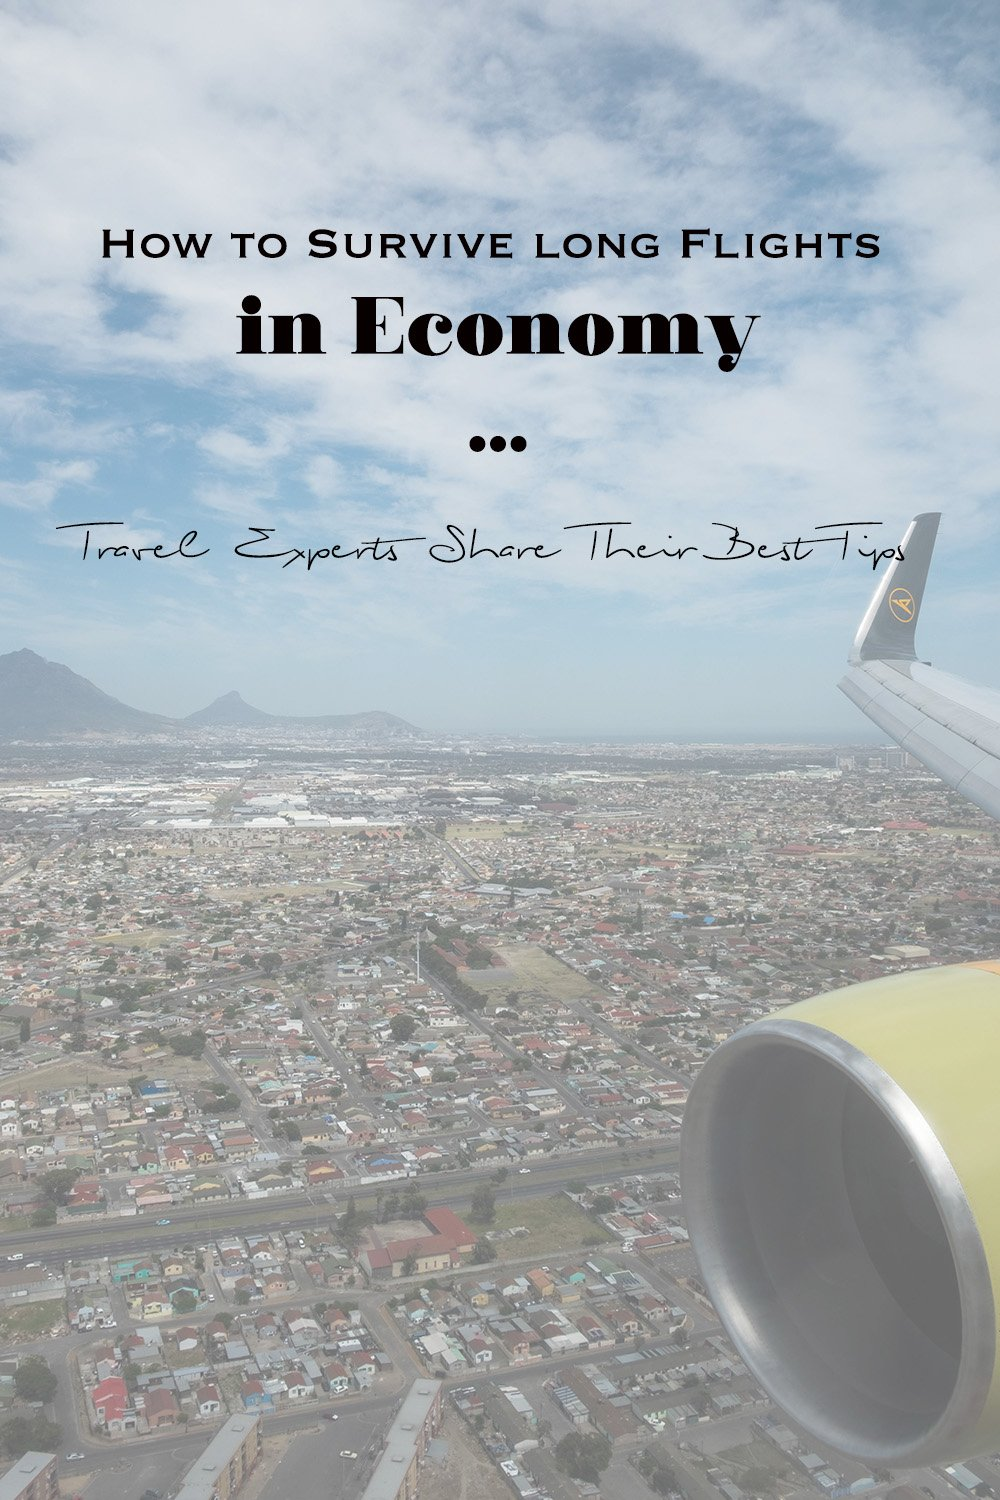 How to survive long flights in economy | Tips for flying economy class | Condor | South Africa